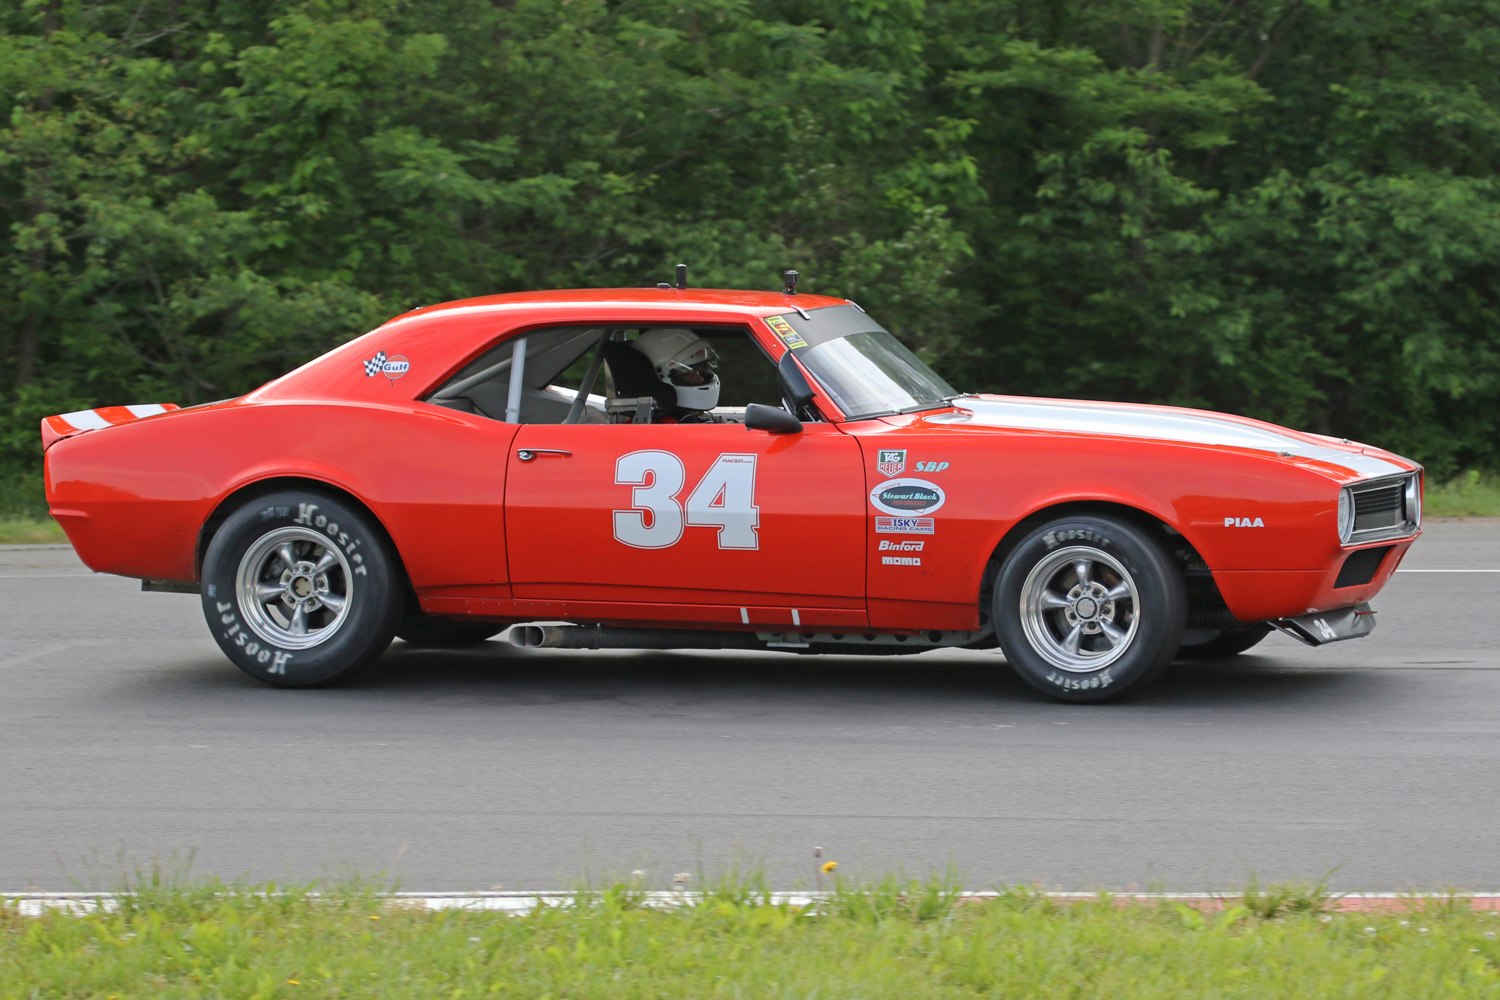 "2019 Jefferson 500 - Summit Point, WV - VRG - May 16-19, 2019 M. M. ""Mike"" Matune Jr."